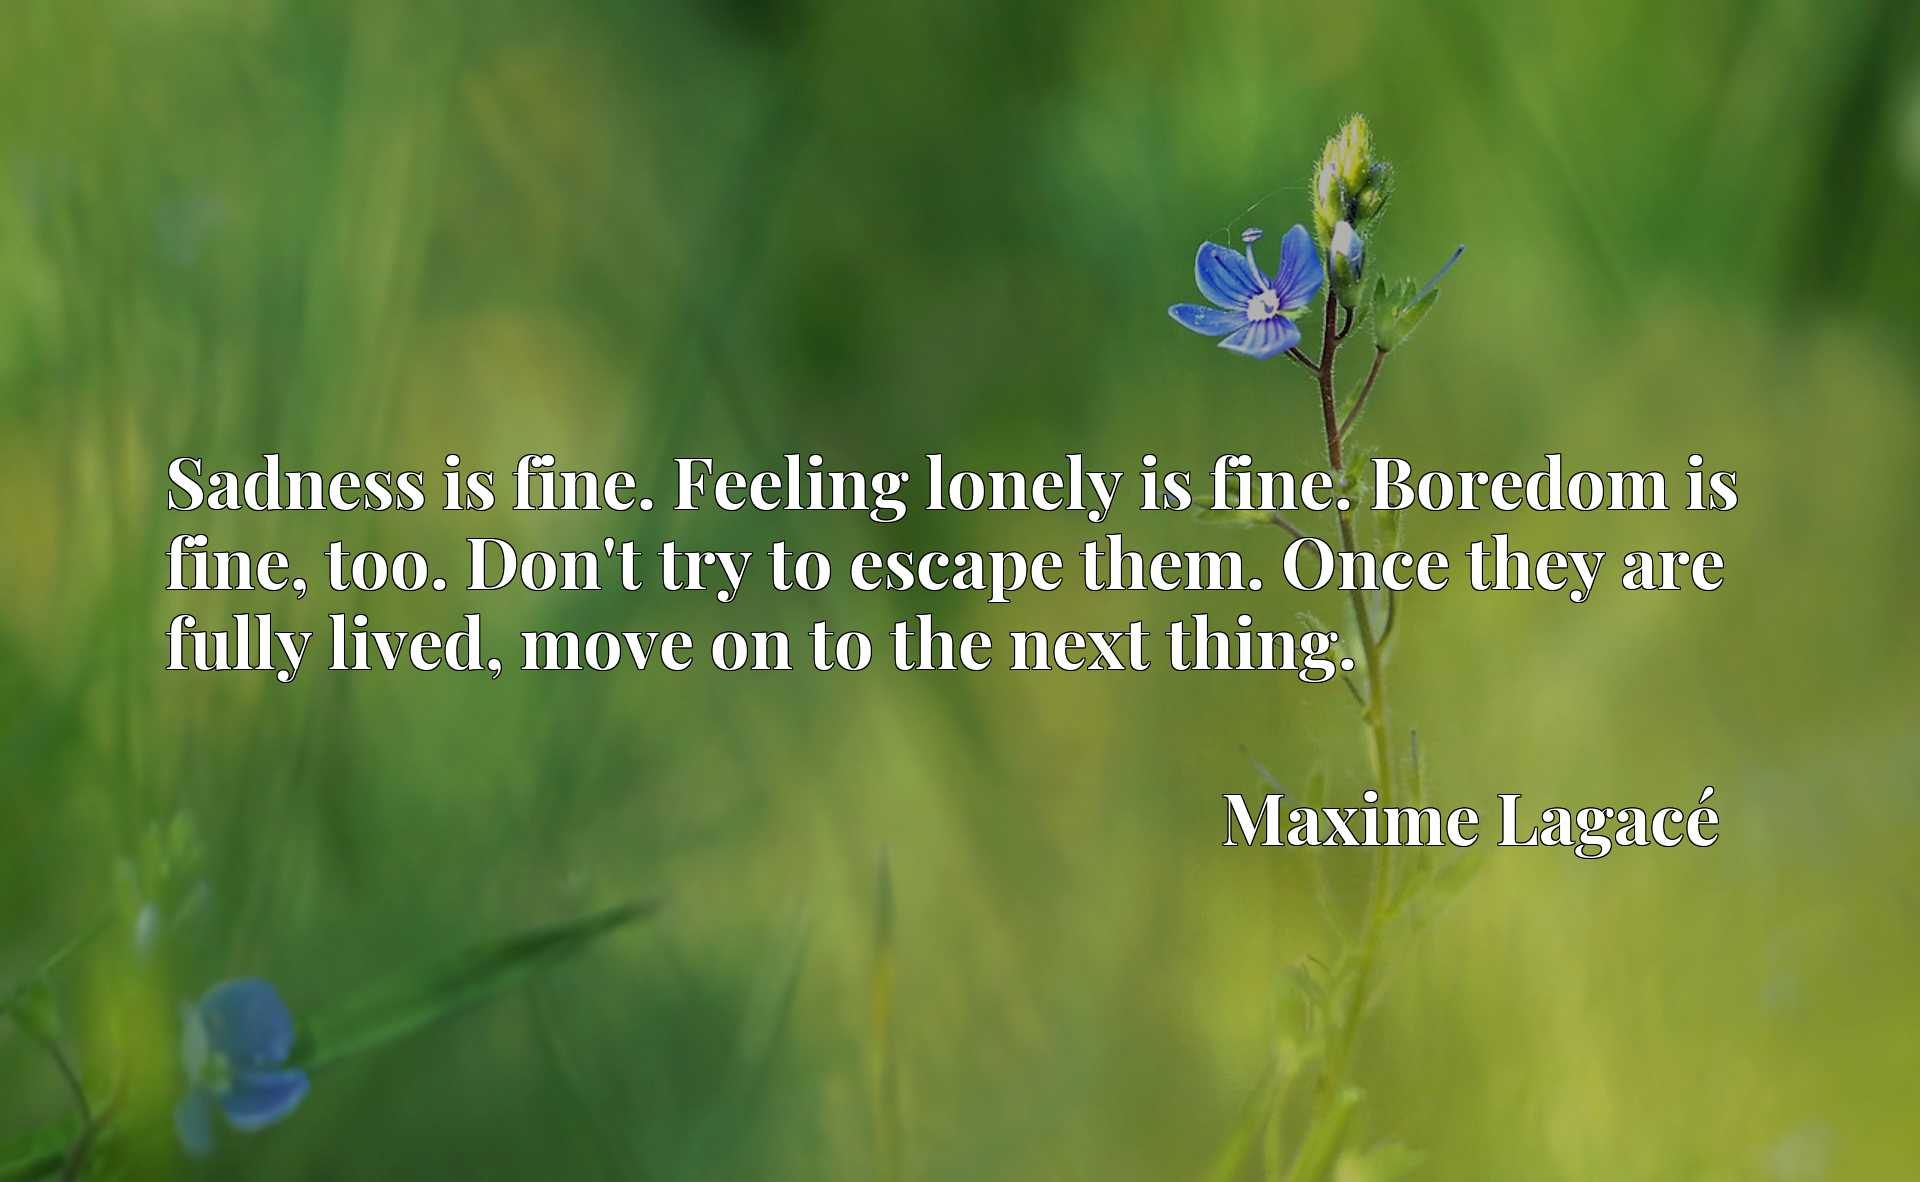 Sadness is fine. Feeling lonely is fine. Boredom is fine, too. Don't try to escape them. Once they are fully lived, move on to the next thing.